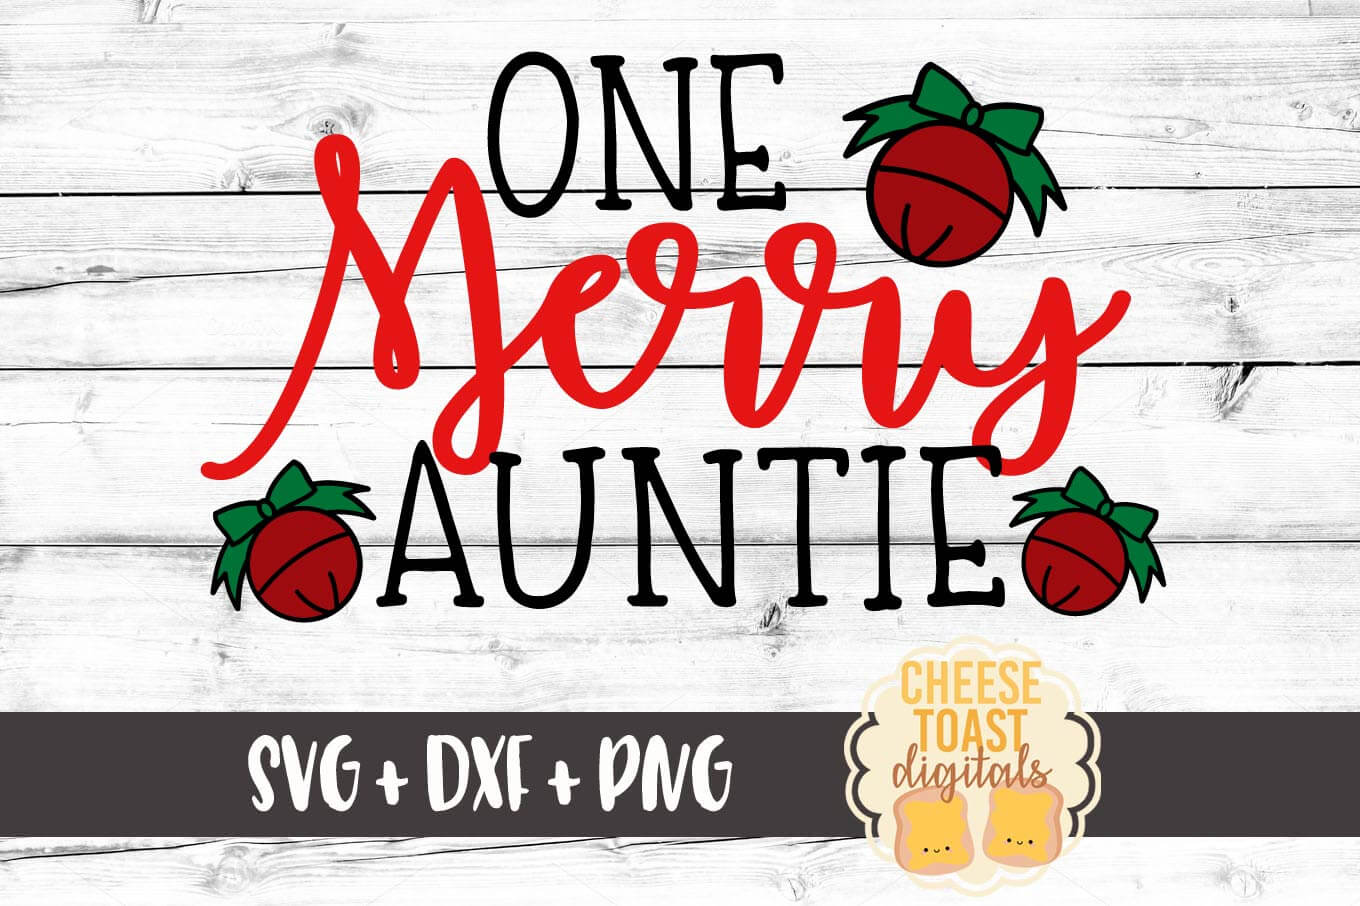 One Merry Auntie - SVG, PNG, DXF